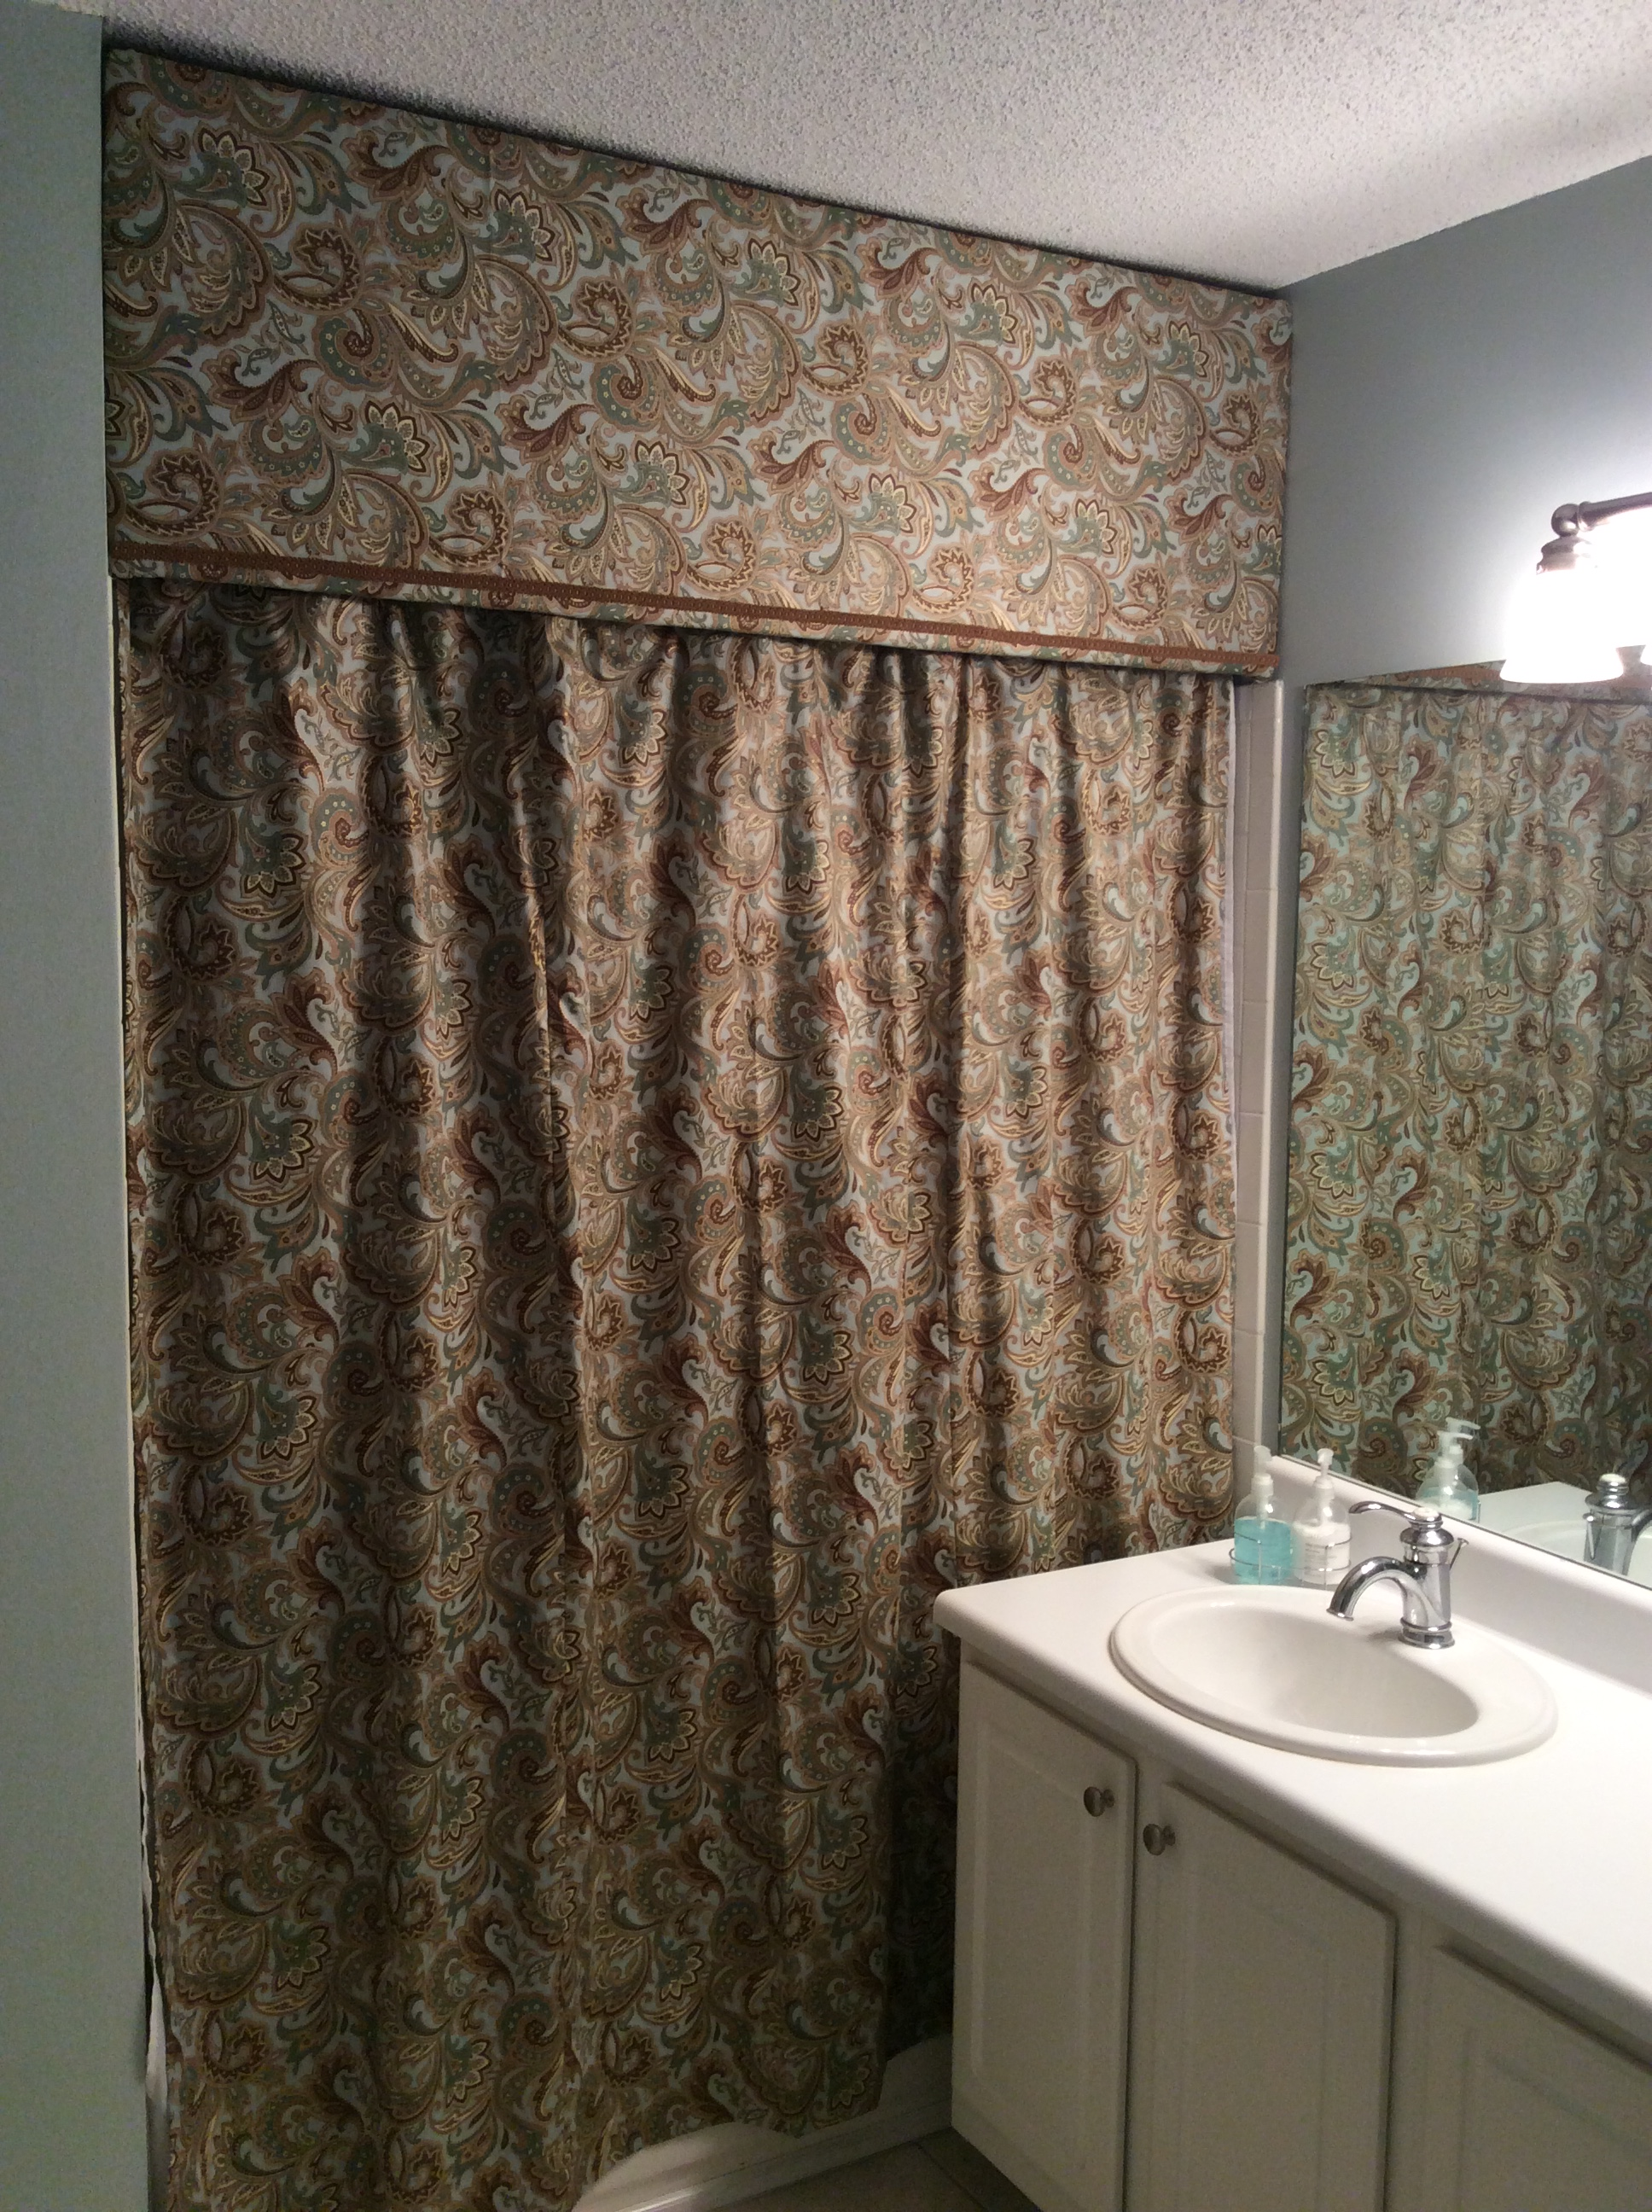 Shower curtain with cornice - Img_0111